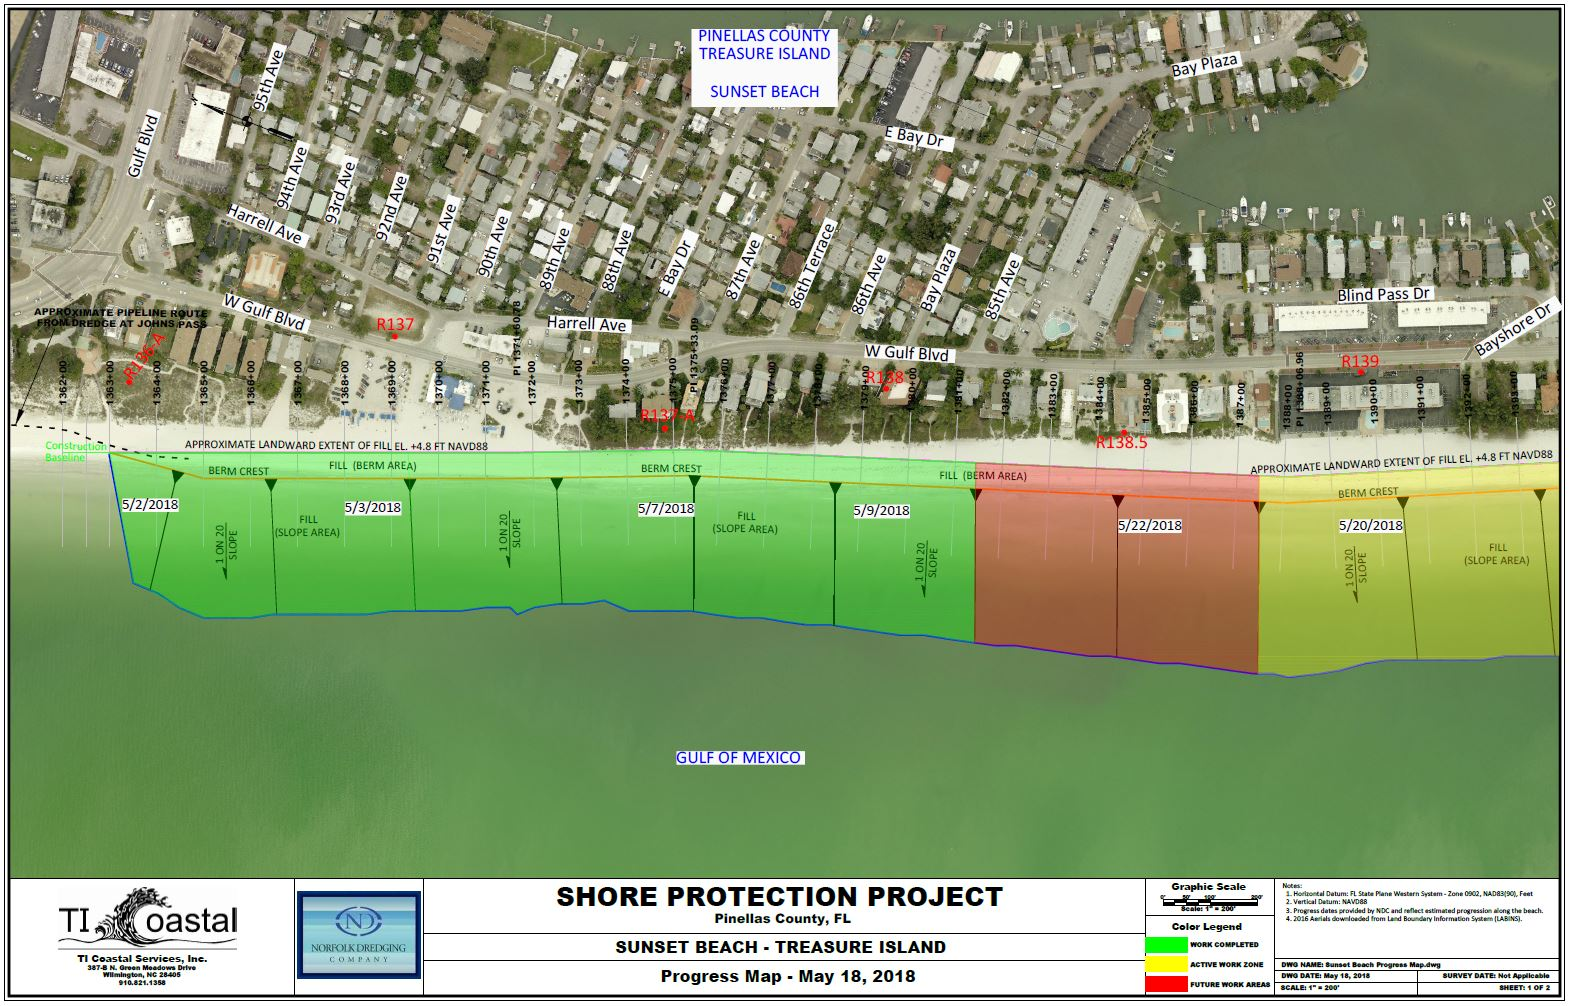 Pinellas County Shore Protection Project Progress Map 1